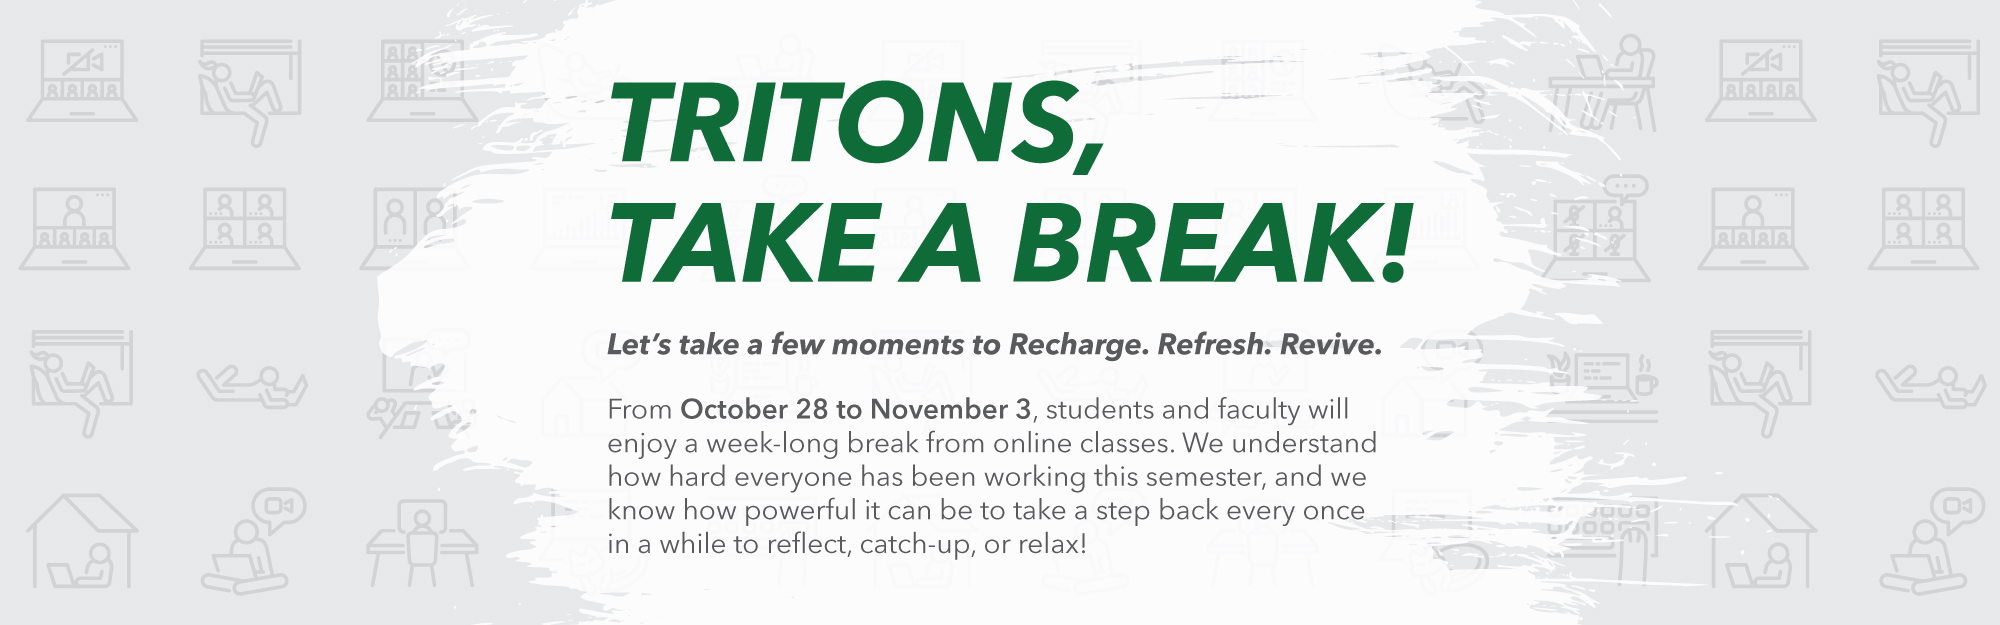 """Take a Break"" from classes beginning Wednesday, Oct. 28, to Tuesday, Nov. 3, 2020. During this week, we'll pause from all virtual classes and meetings and use it as a time to catch up and recharge, so we'll be ready to tackle the expectations of courses and research throughout the rest of the semester."